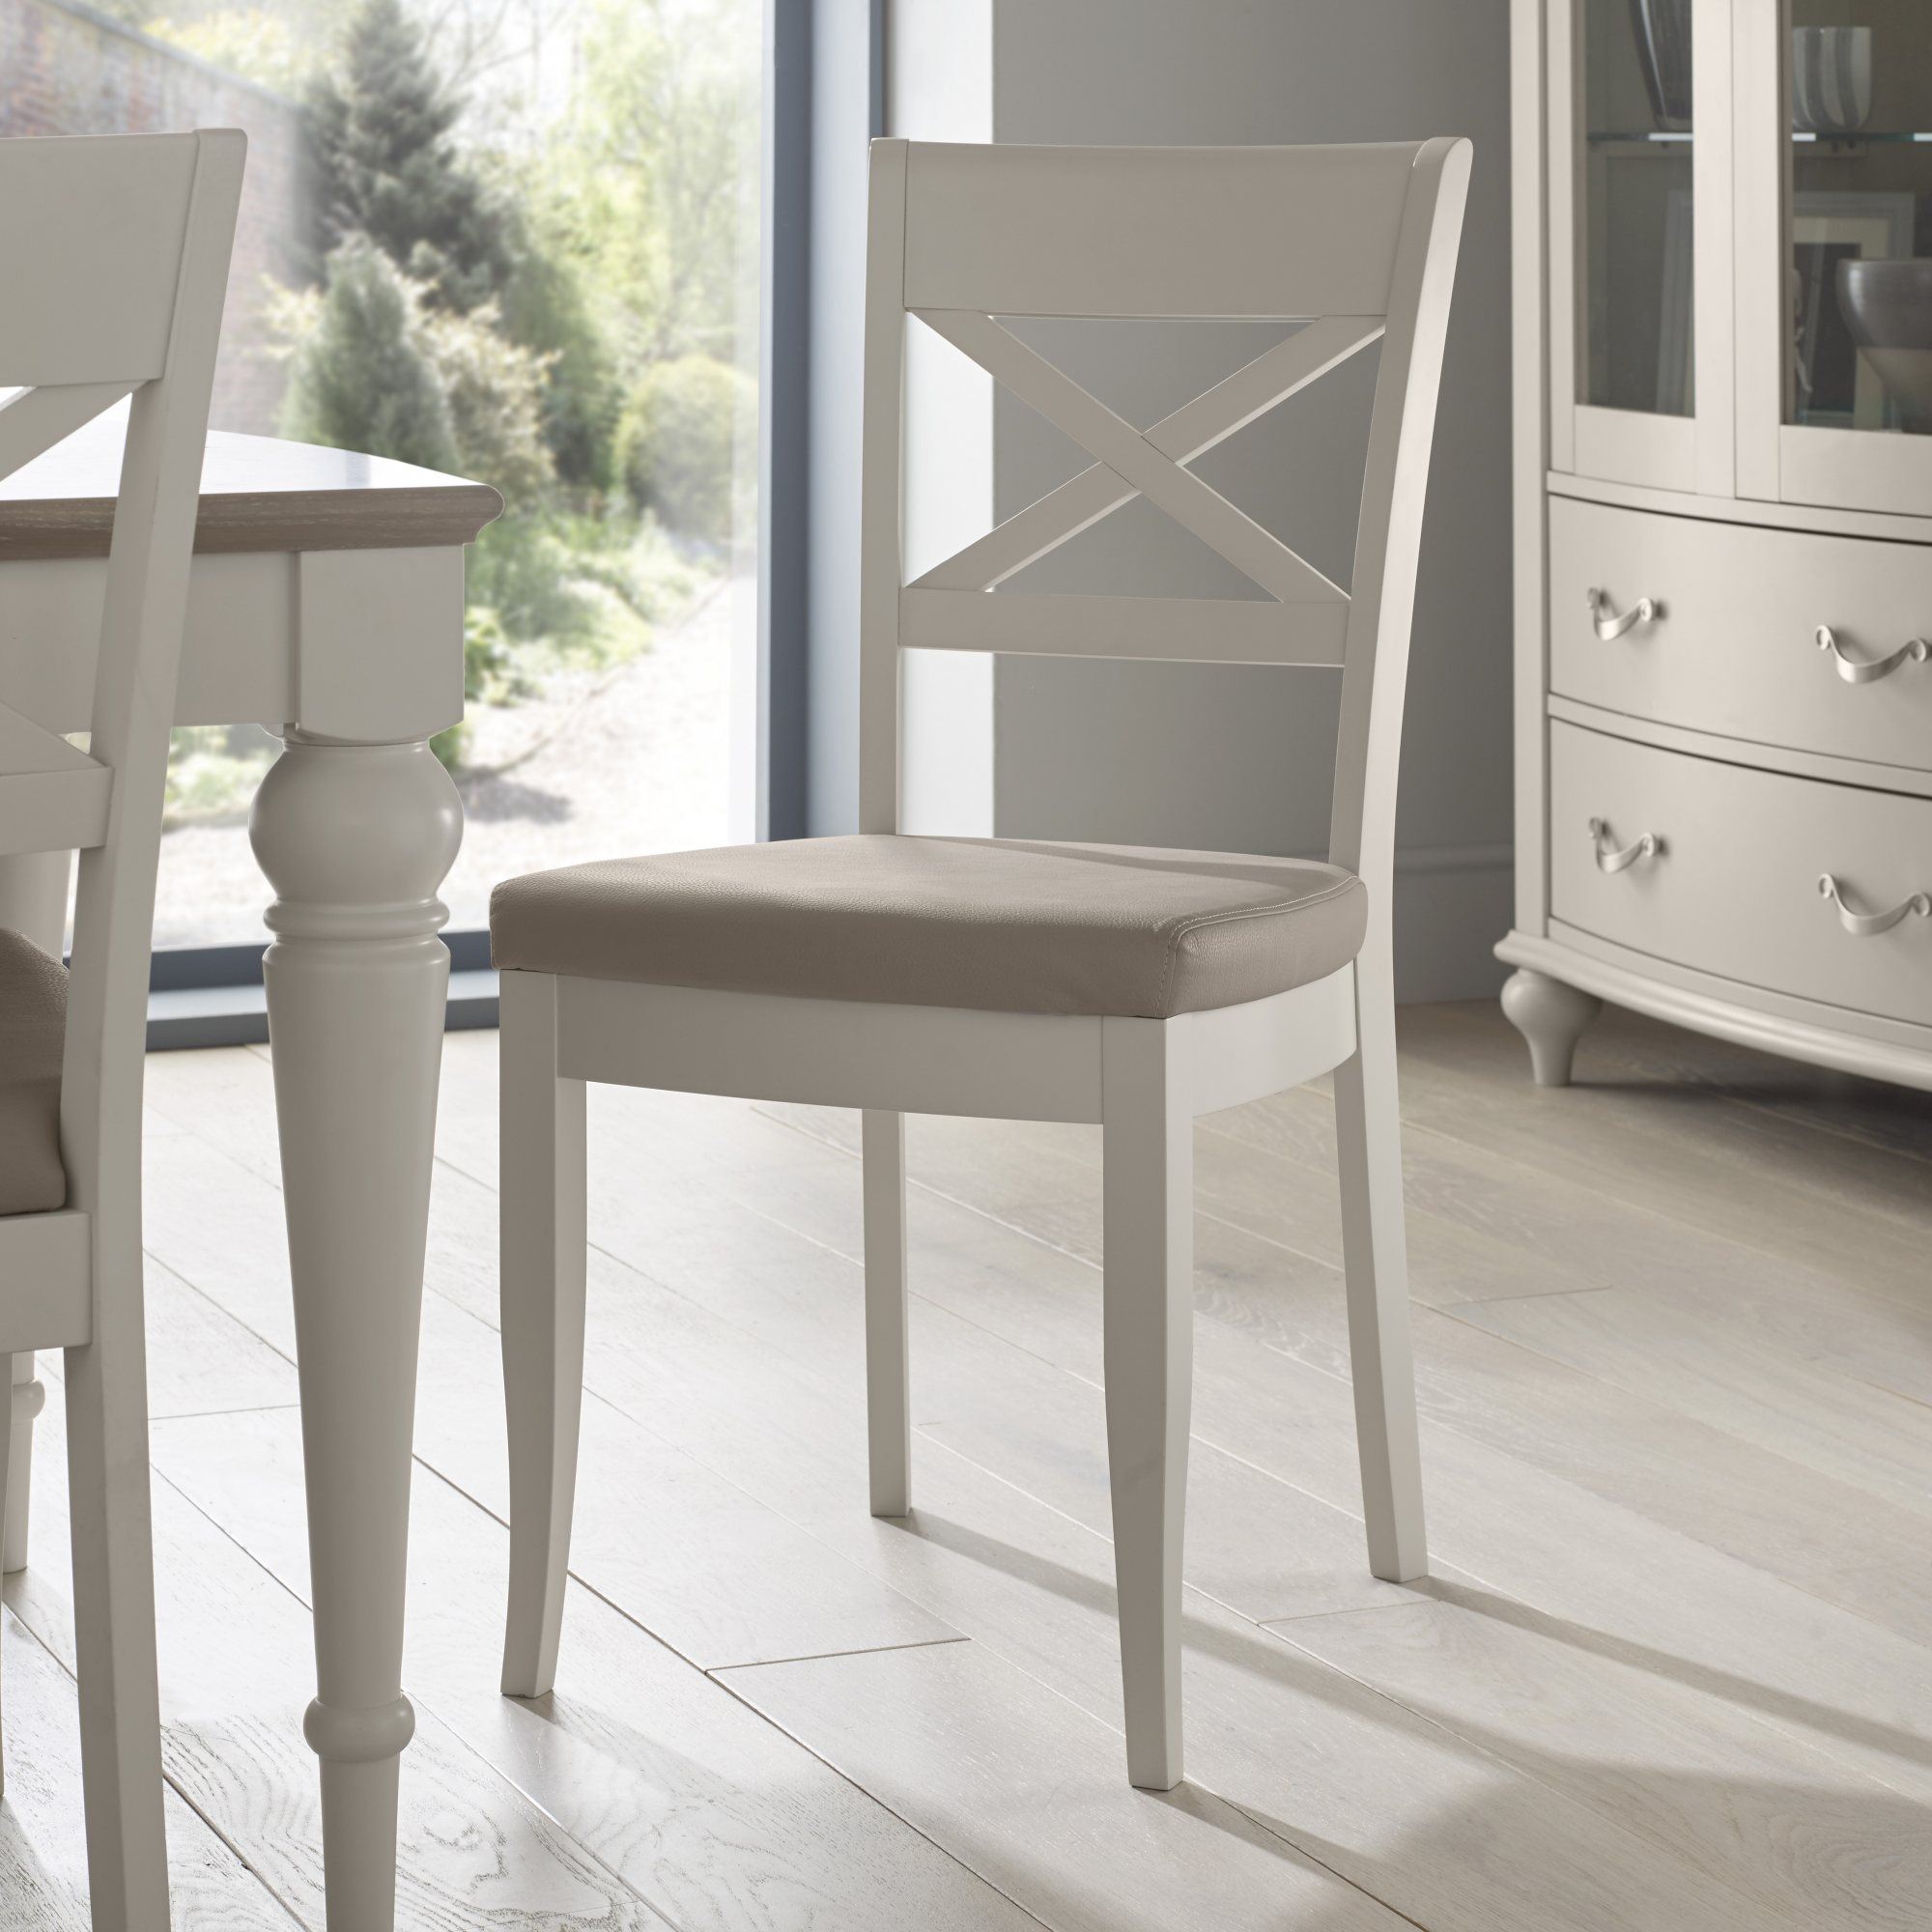 MONICA GREY DINING CHAIR - BONDED SEAT